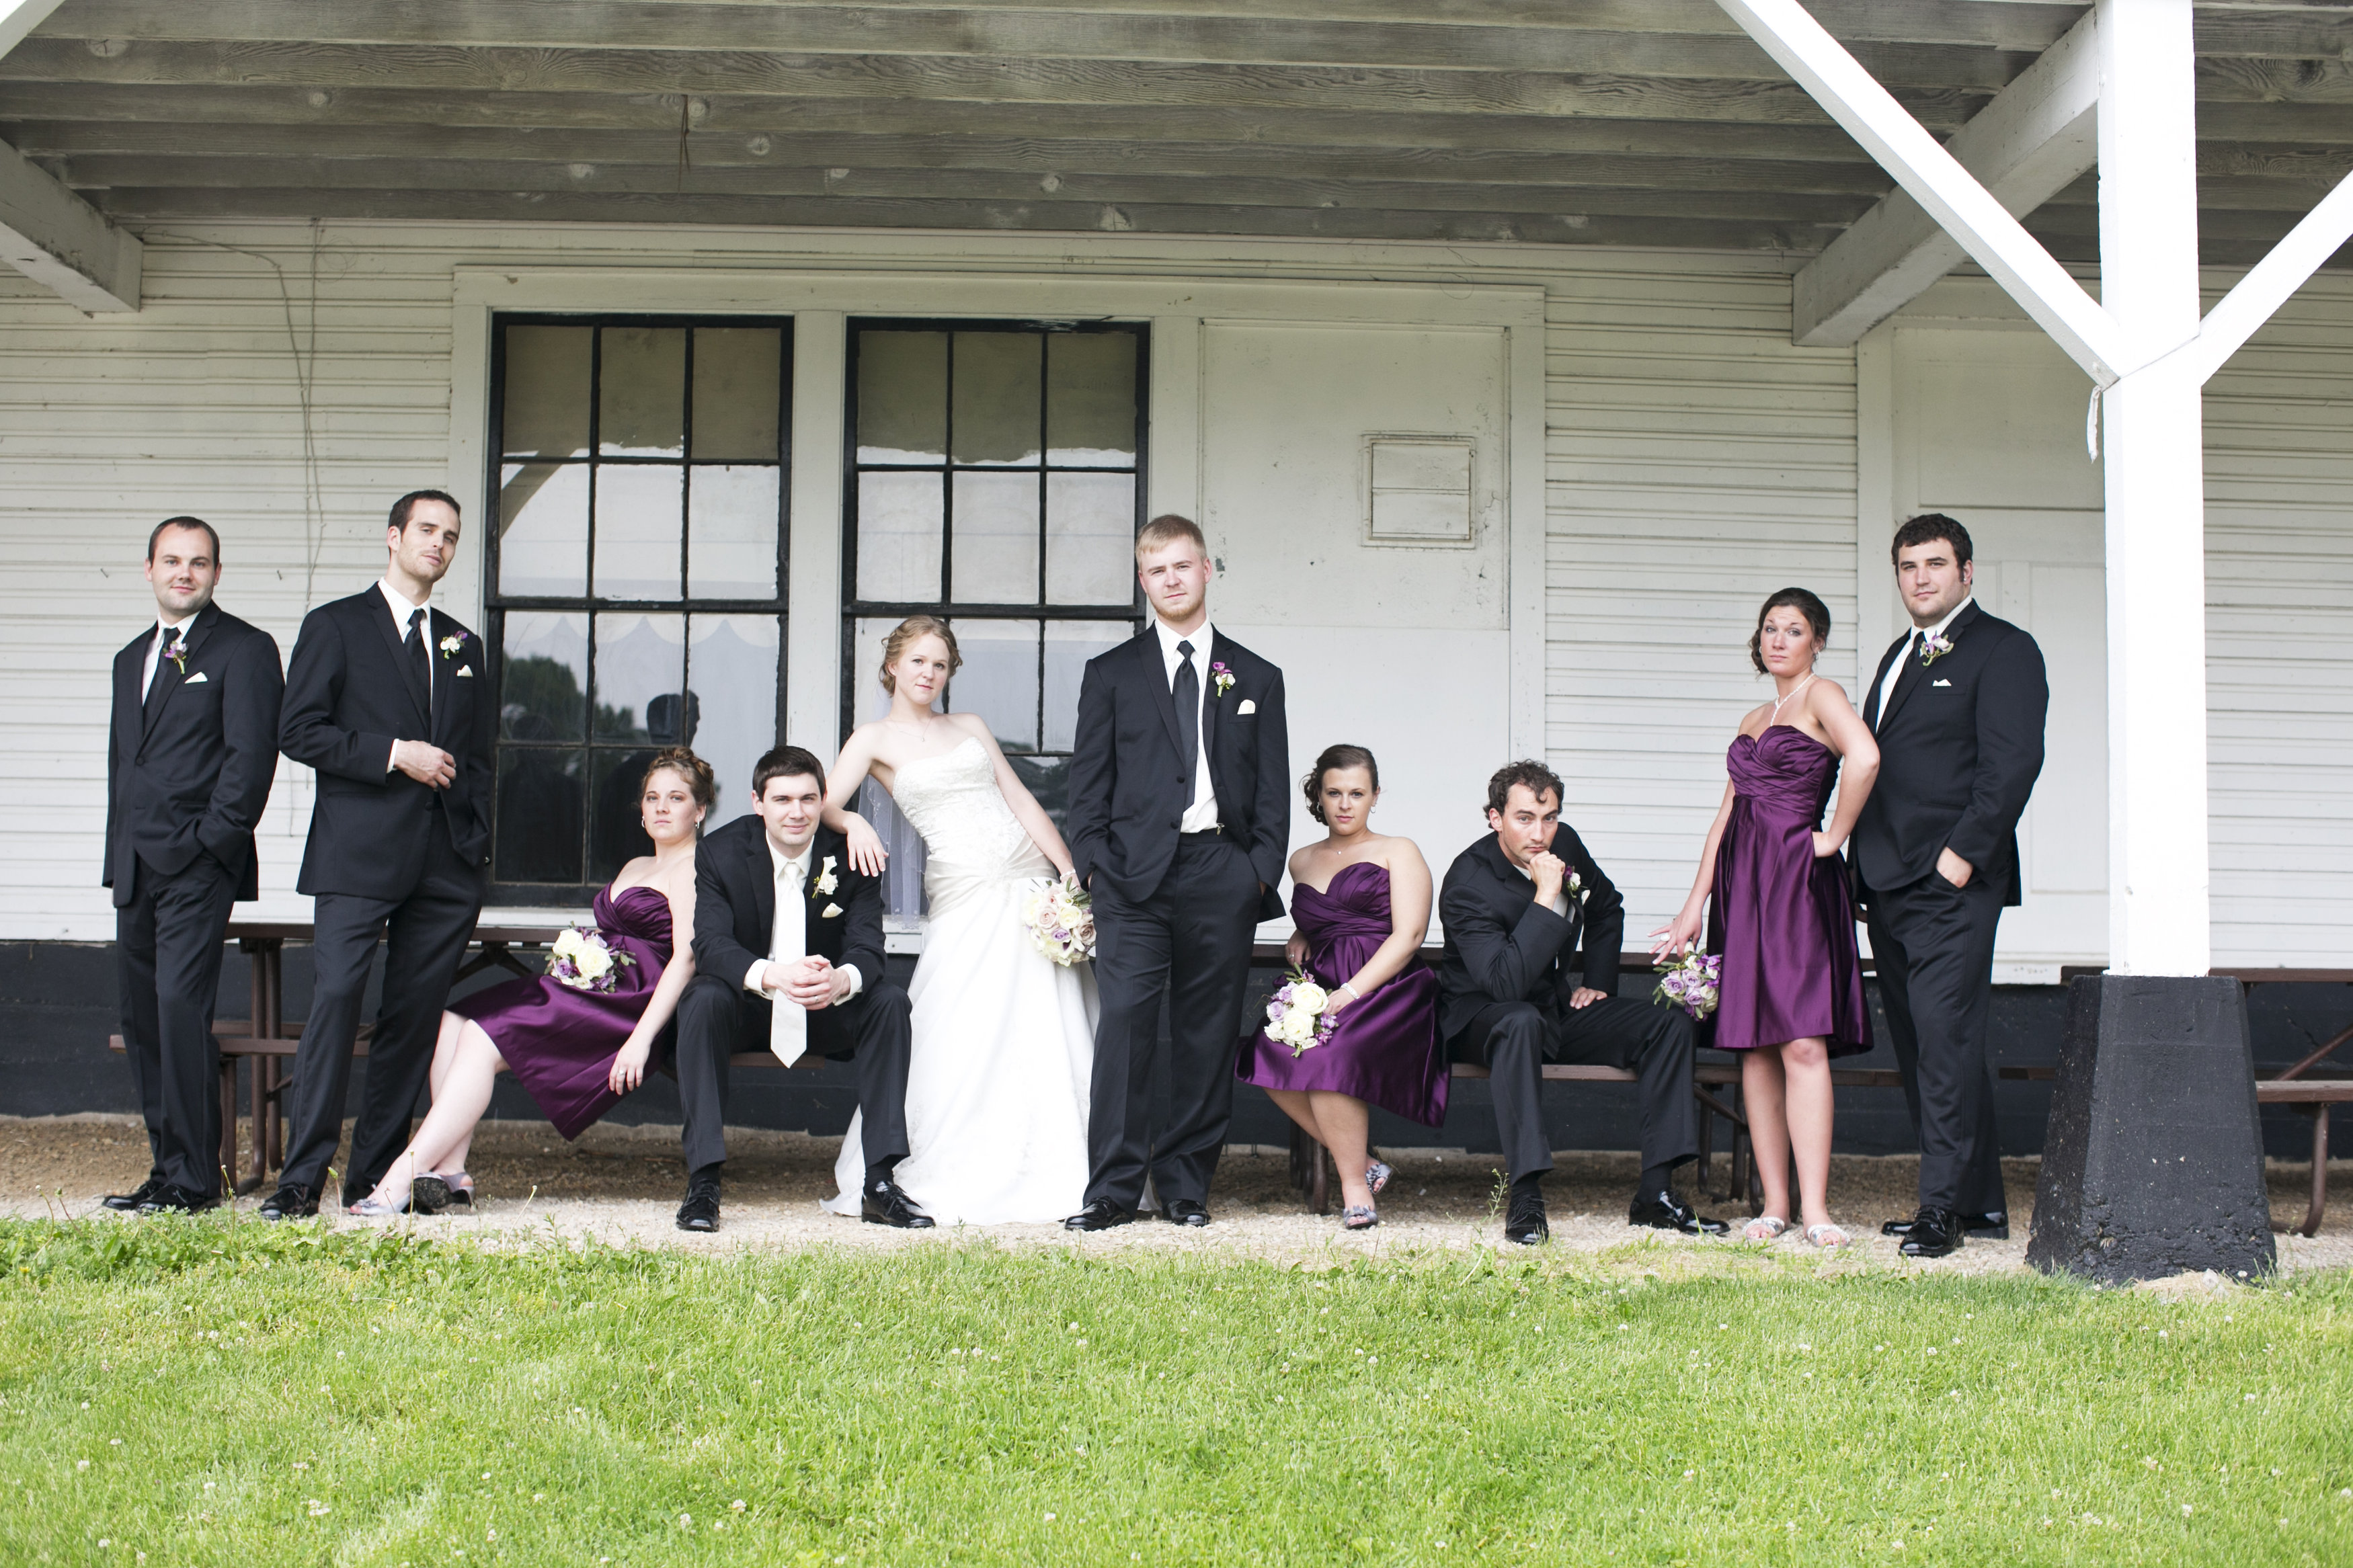 wedding party group photo